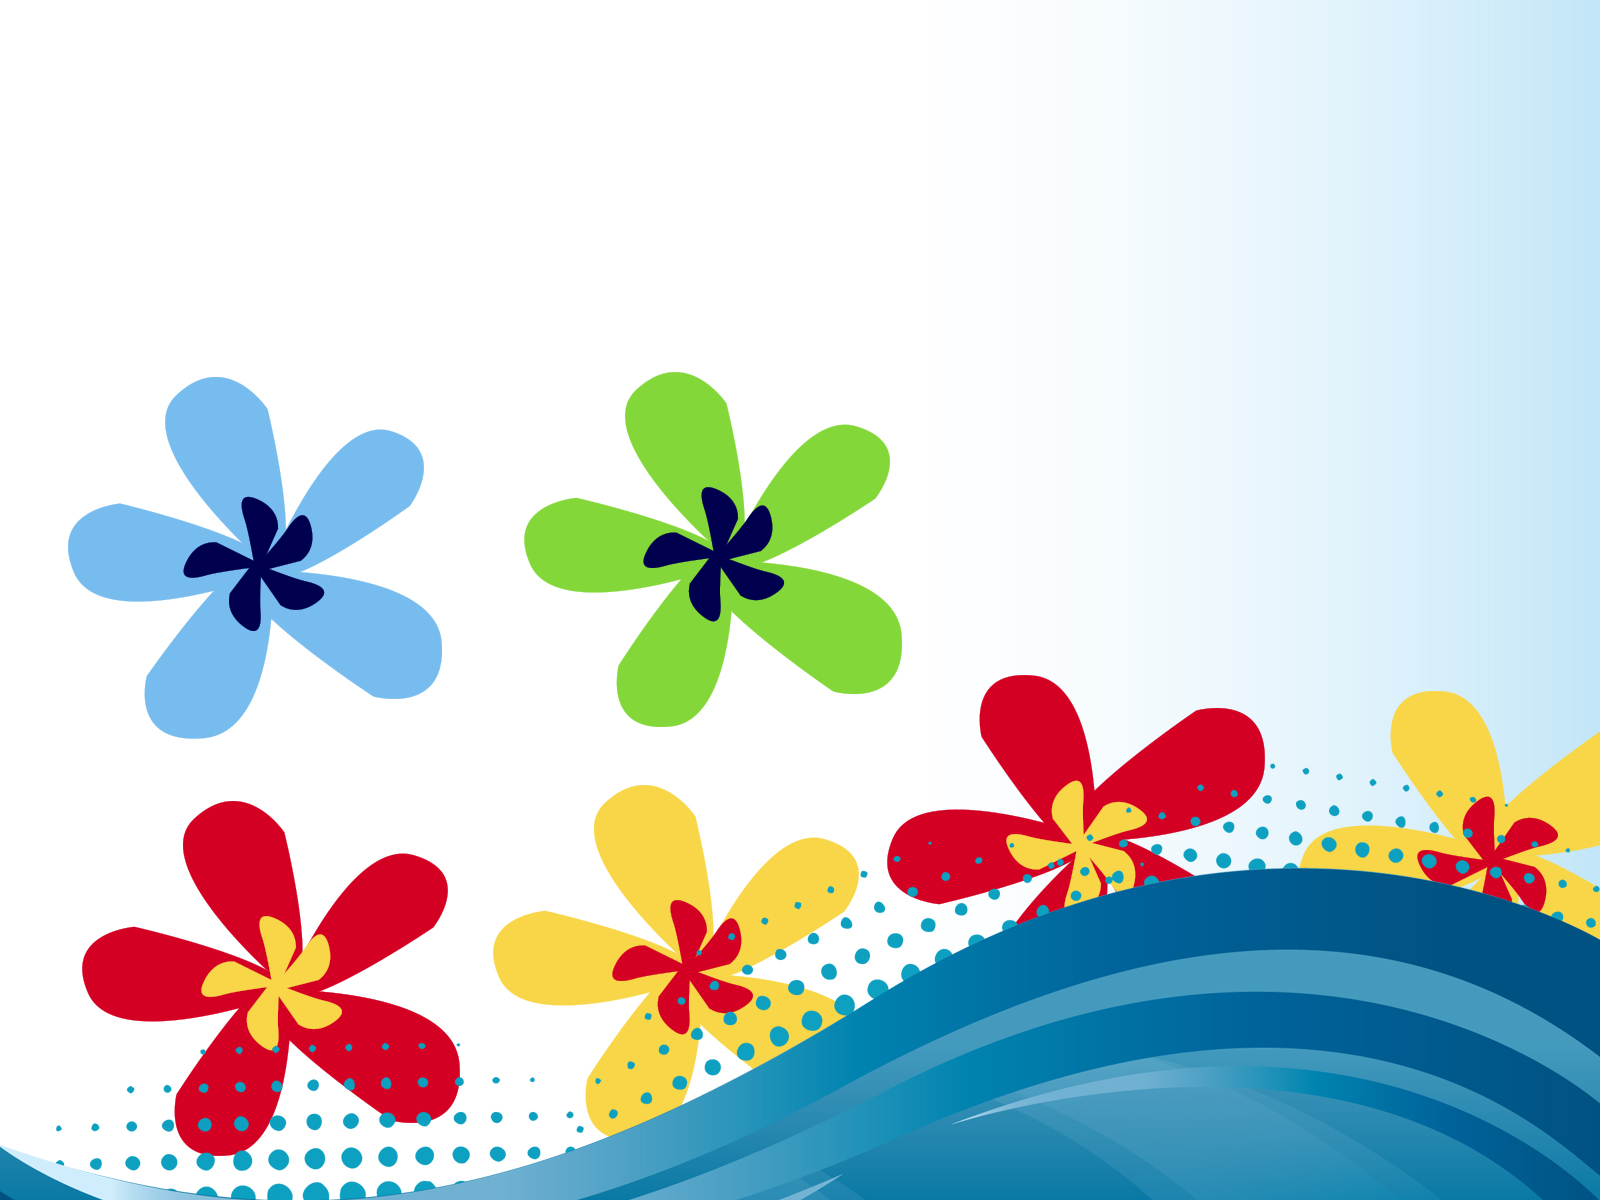 Free Presentation Background Cliparts, Download Free Clip.